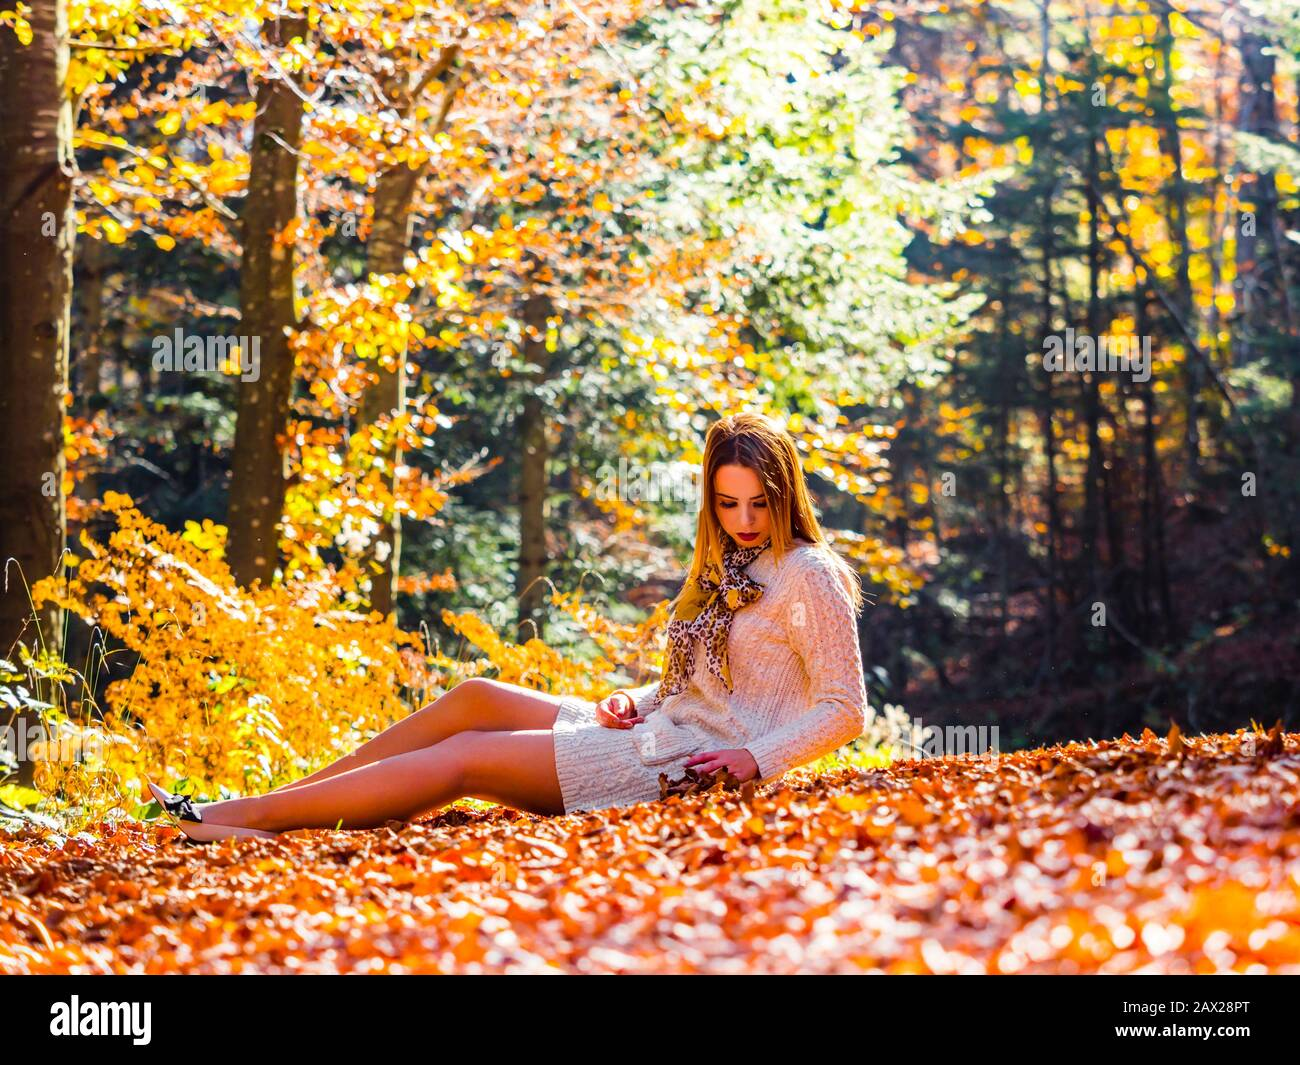 Autumn in forest teen girl sitting reclined on ground full length whole body sideview side-view serious looking down hand holding fallen leaves Stock Photo